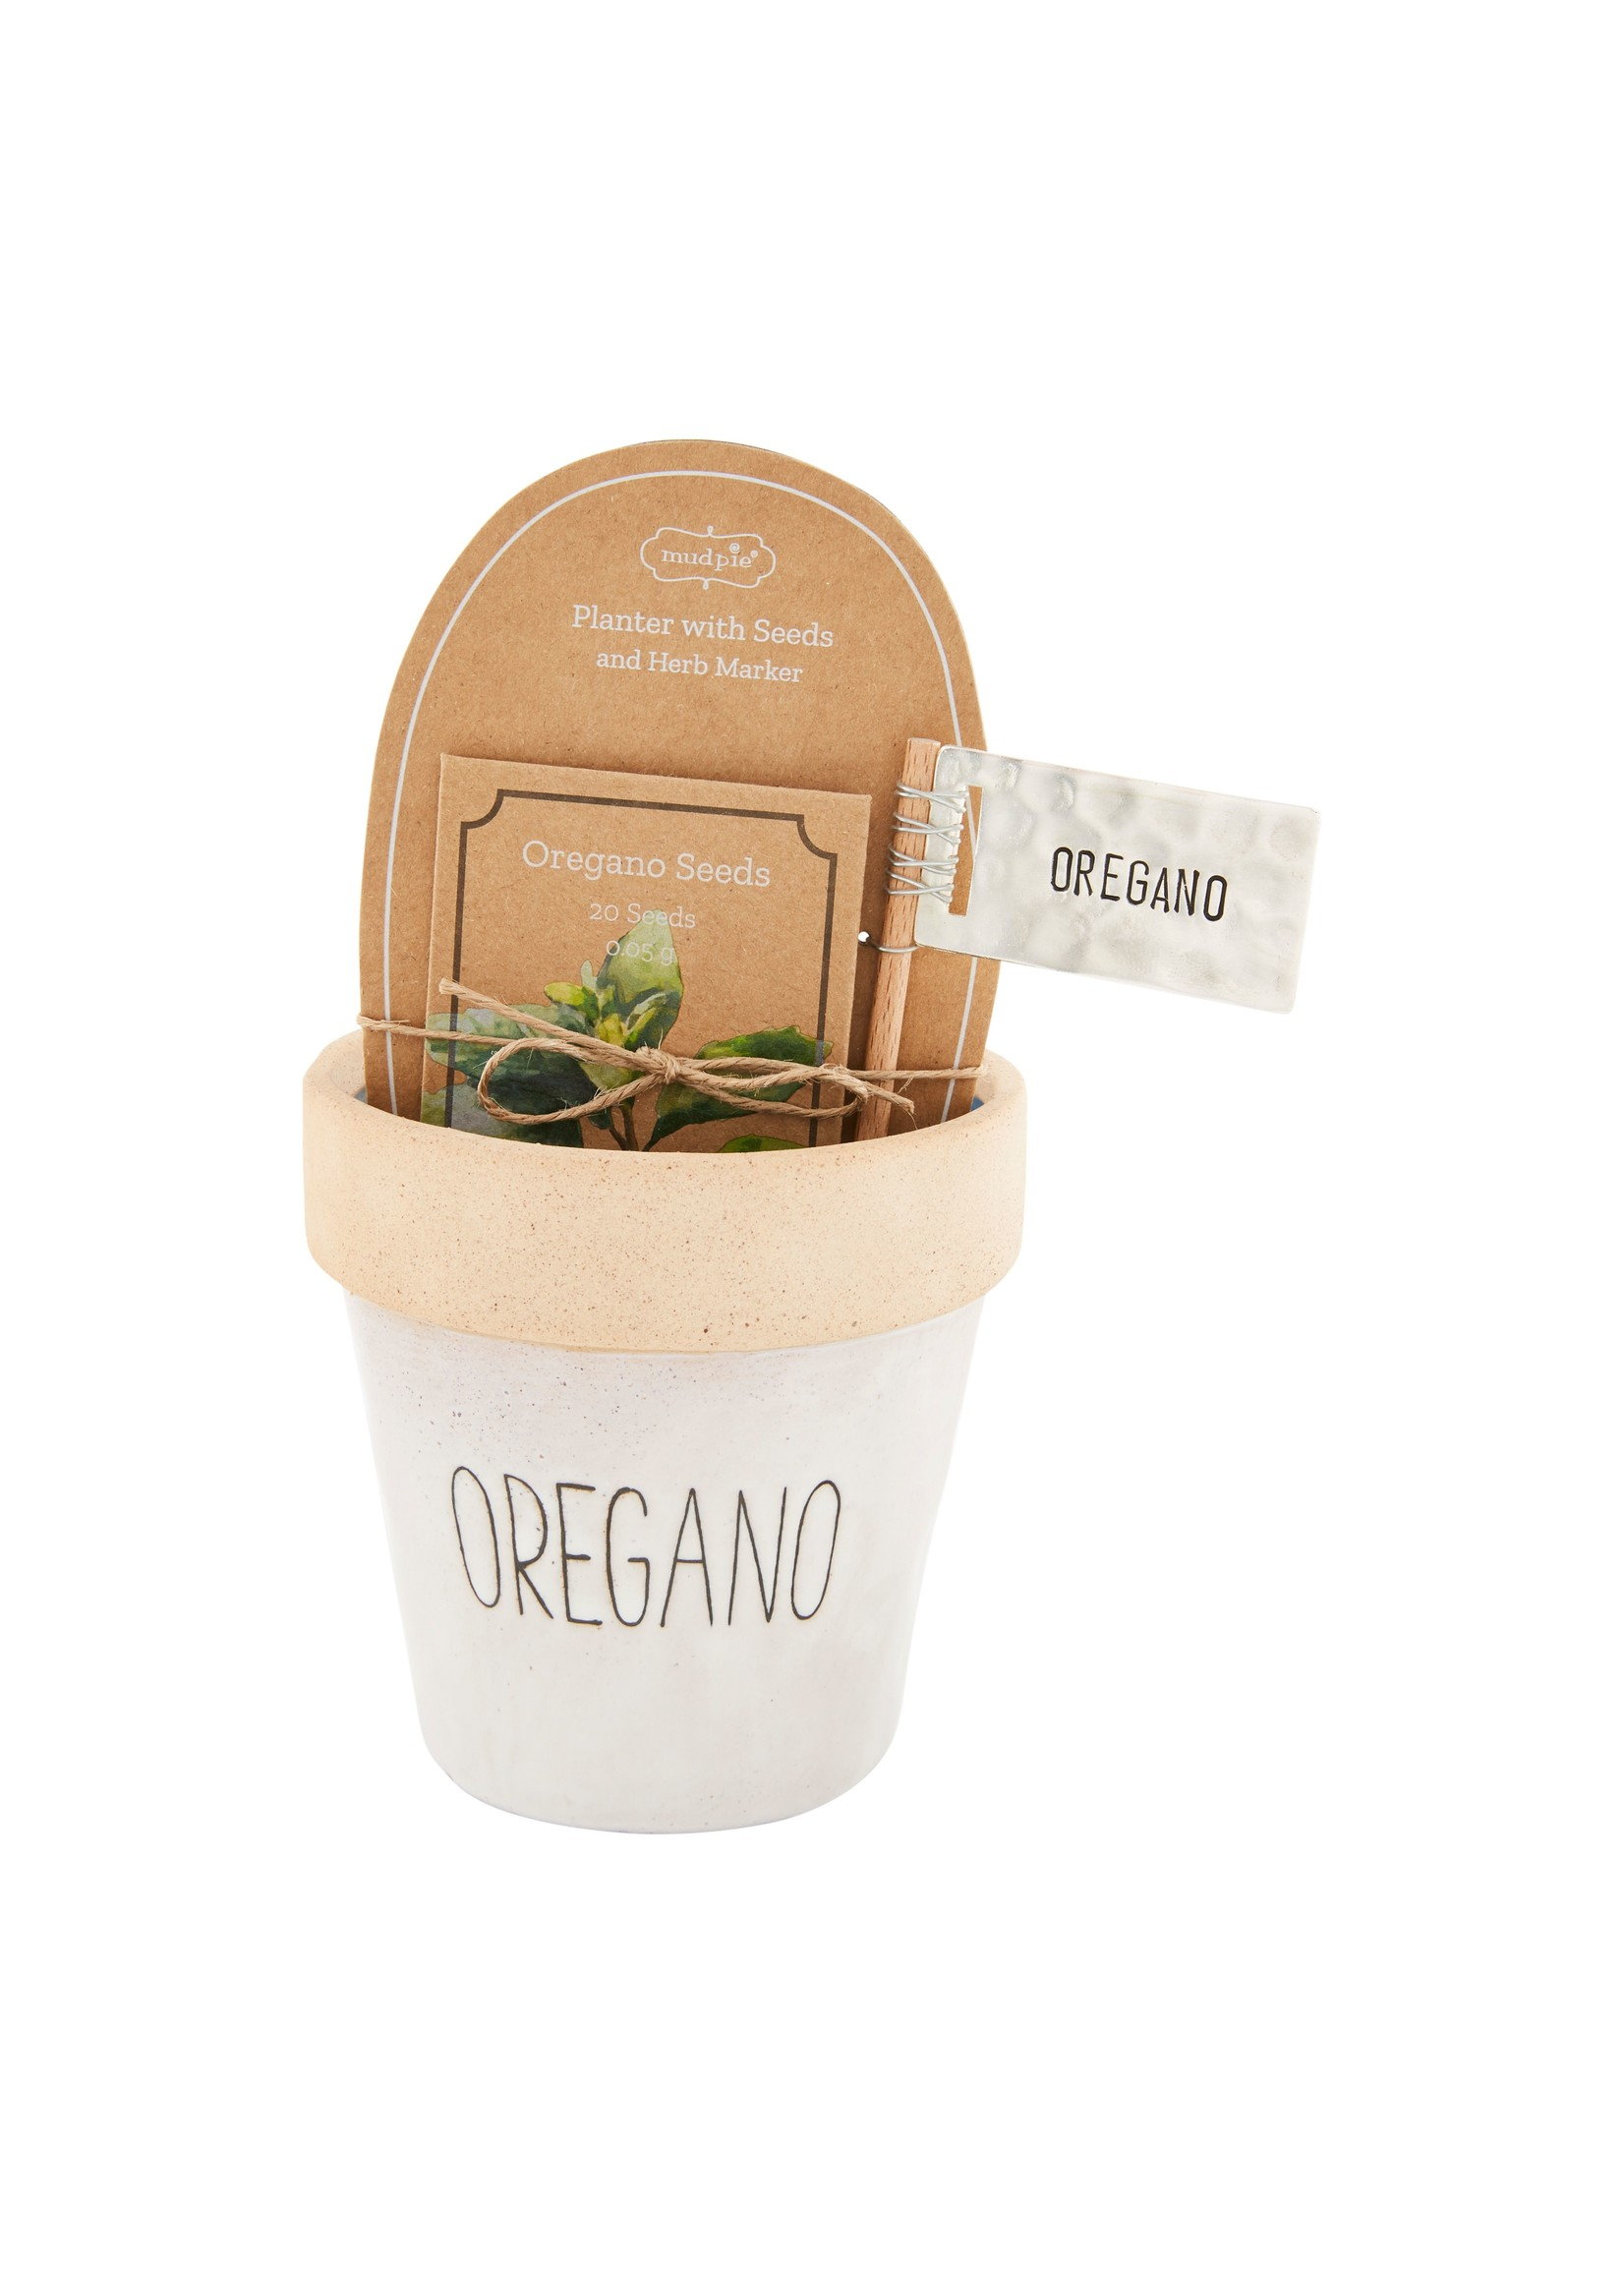 Oregano Seed Pot